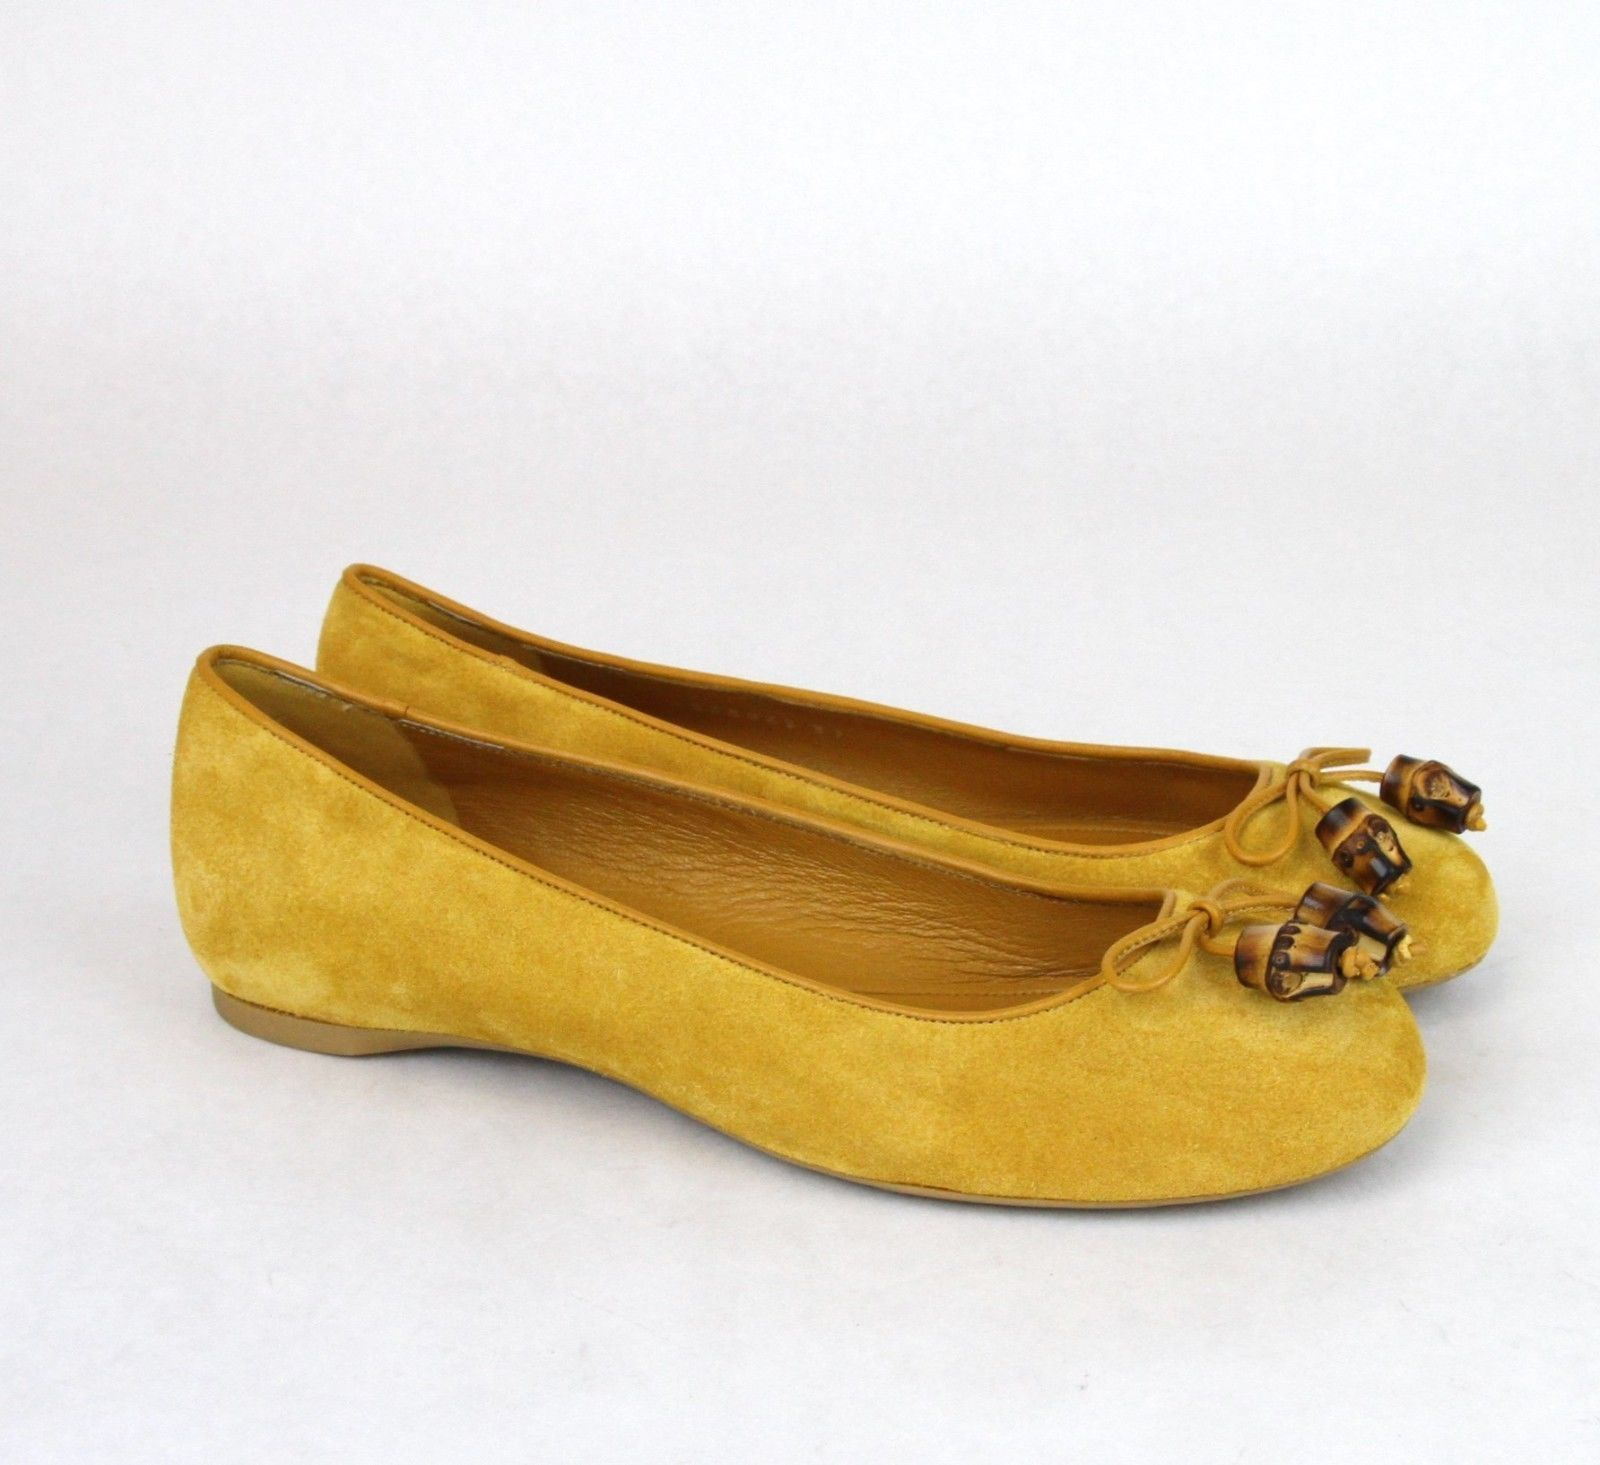 02e227149 ... New Authentic GUCCI Womens Suede Bamboo Bow Ballet Flat Shoes Size US  10 ...